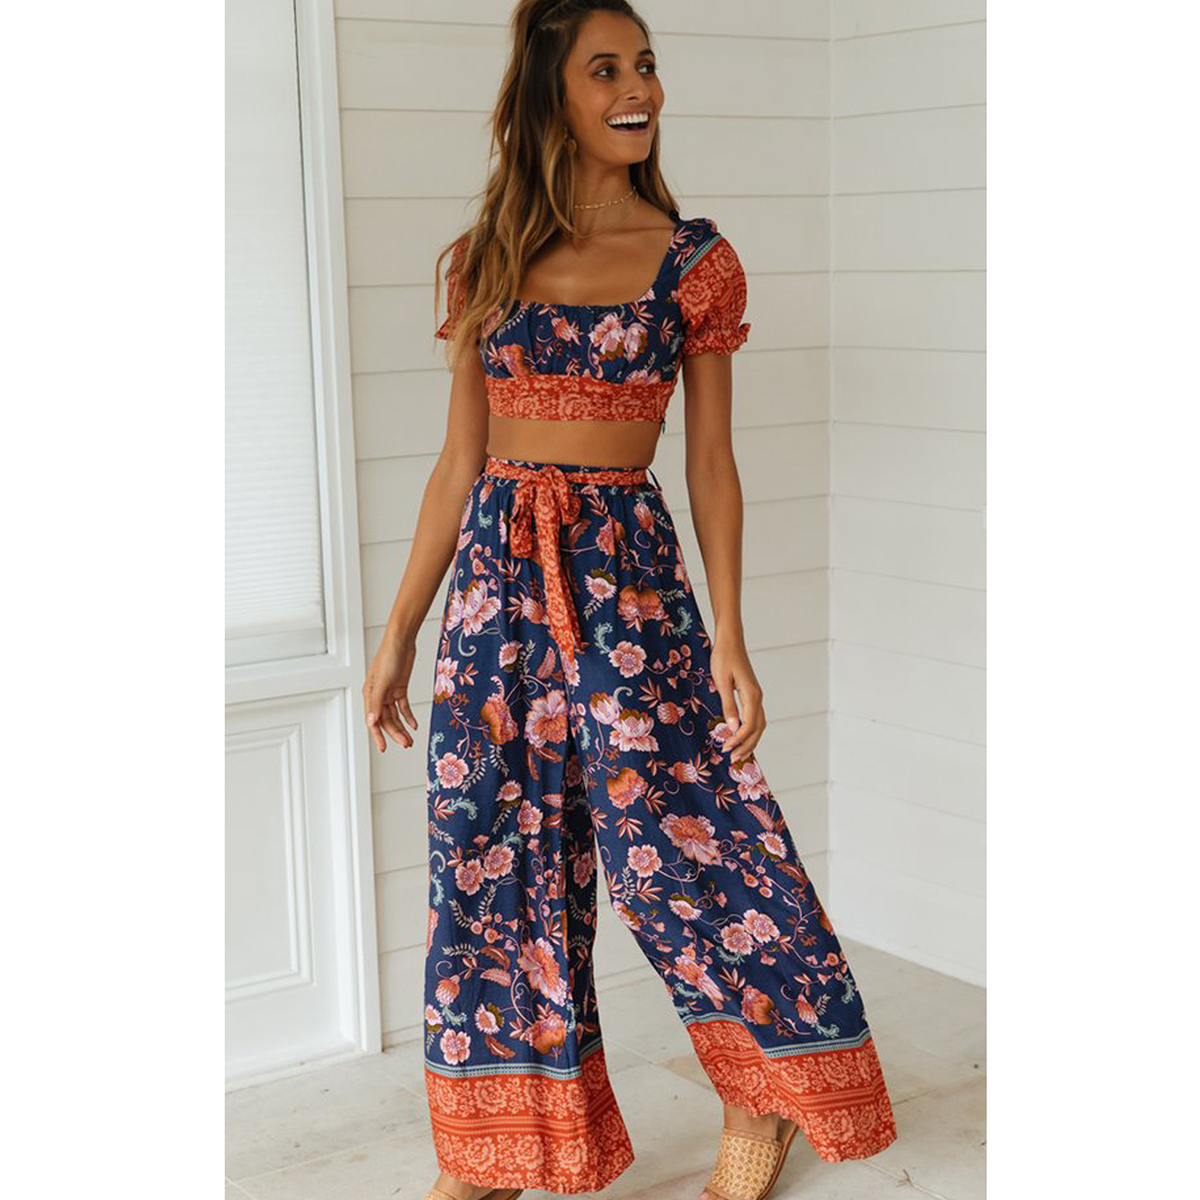 Boho Floral Printed Two Pieces Set 2019 Summer Elastic Slim Short Tops And Long Wide Leg Pants Beach Casual Women Sets Clothes